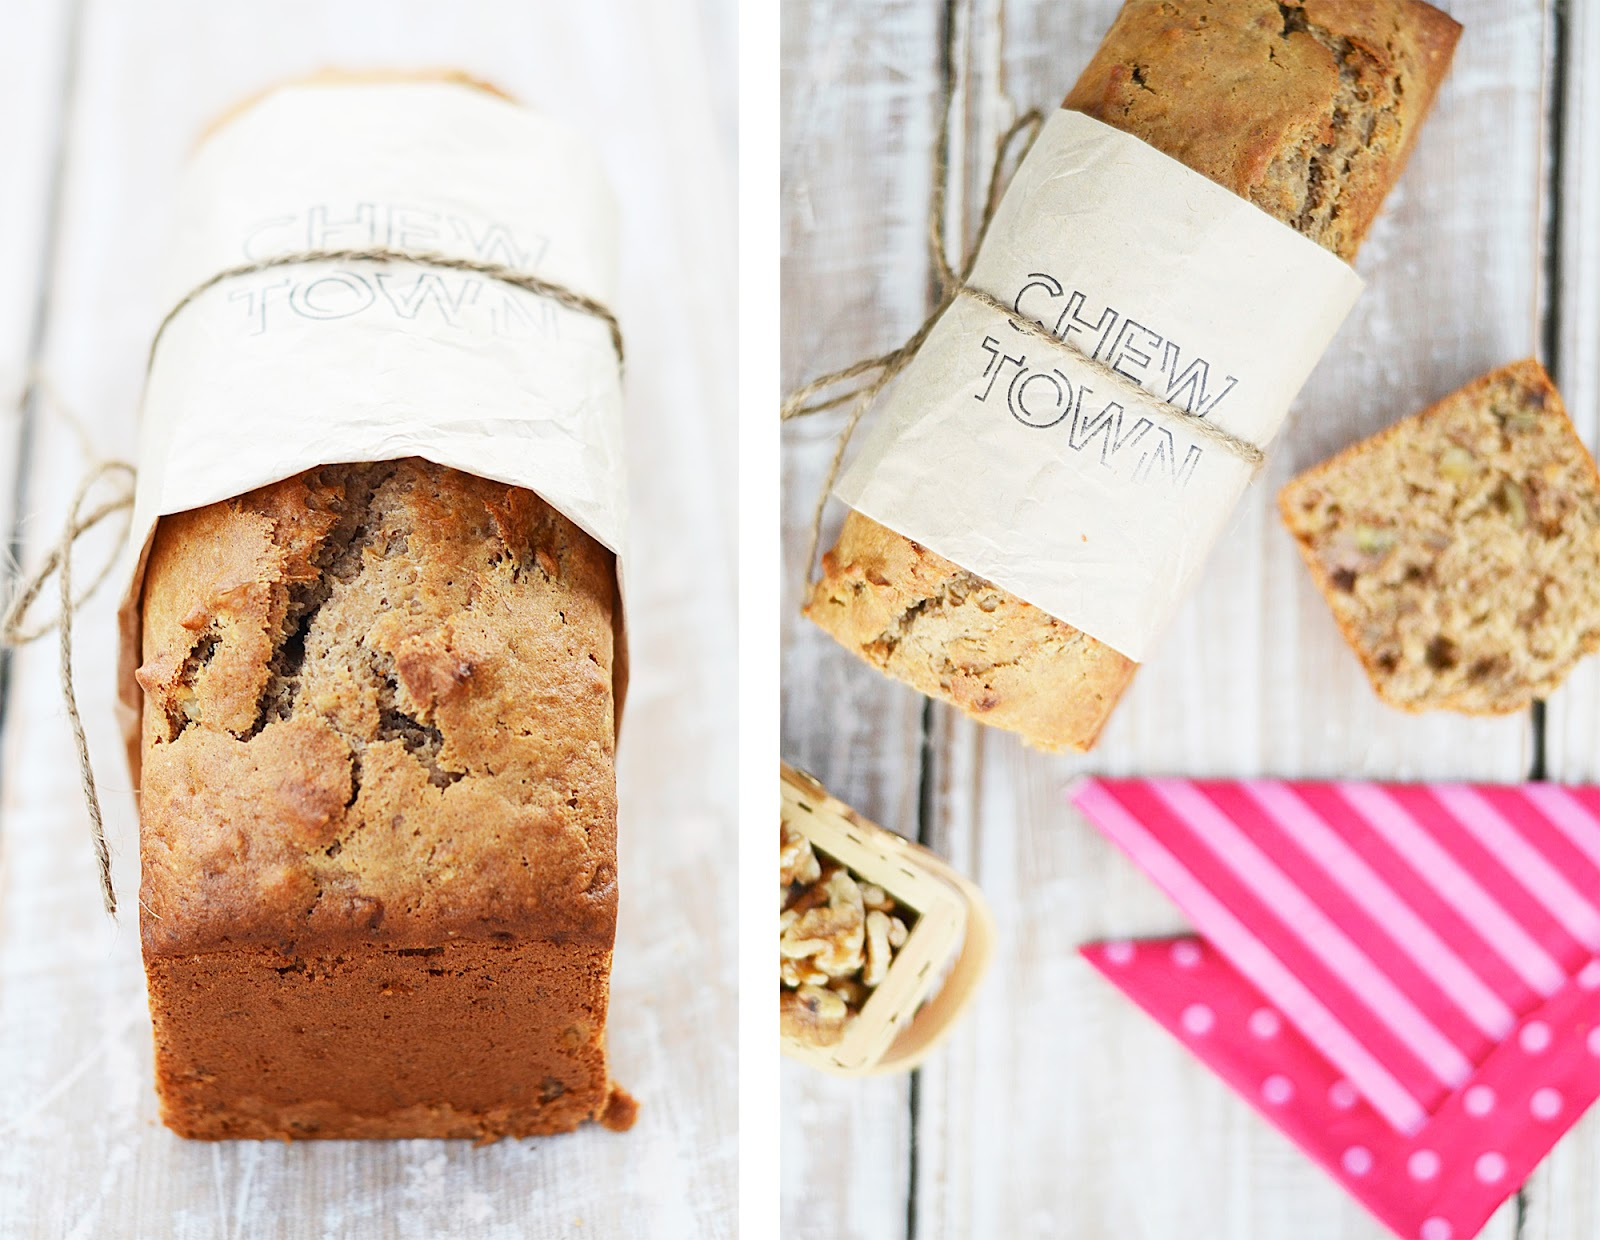 Banana and walnut bread recipe chew town food blog there are hundreds of fantastic food blogs out there that i love and admire but every now and again i come across a gem of a blog that i really resonate forumfinder Choice Image